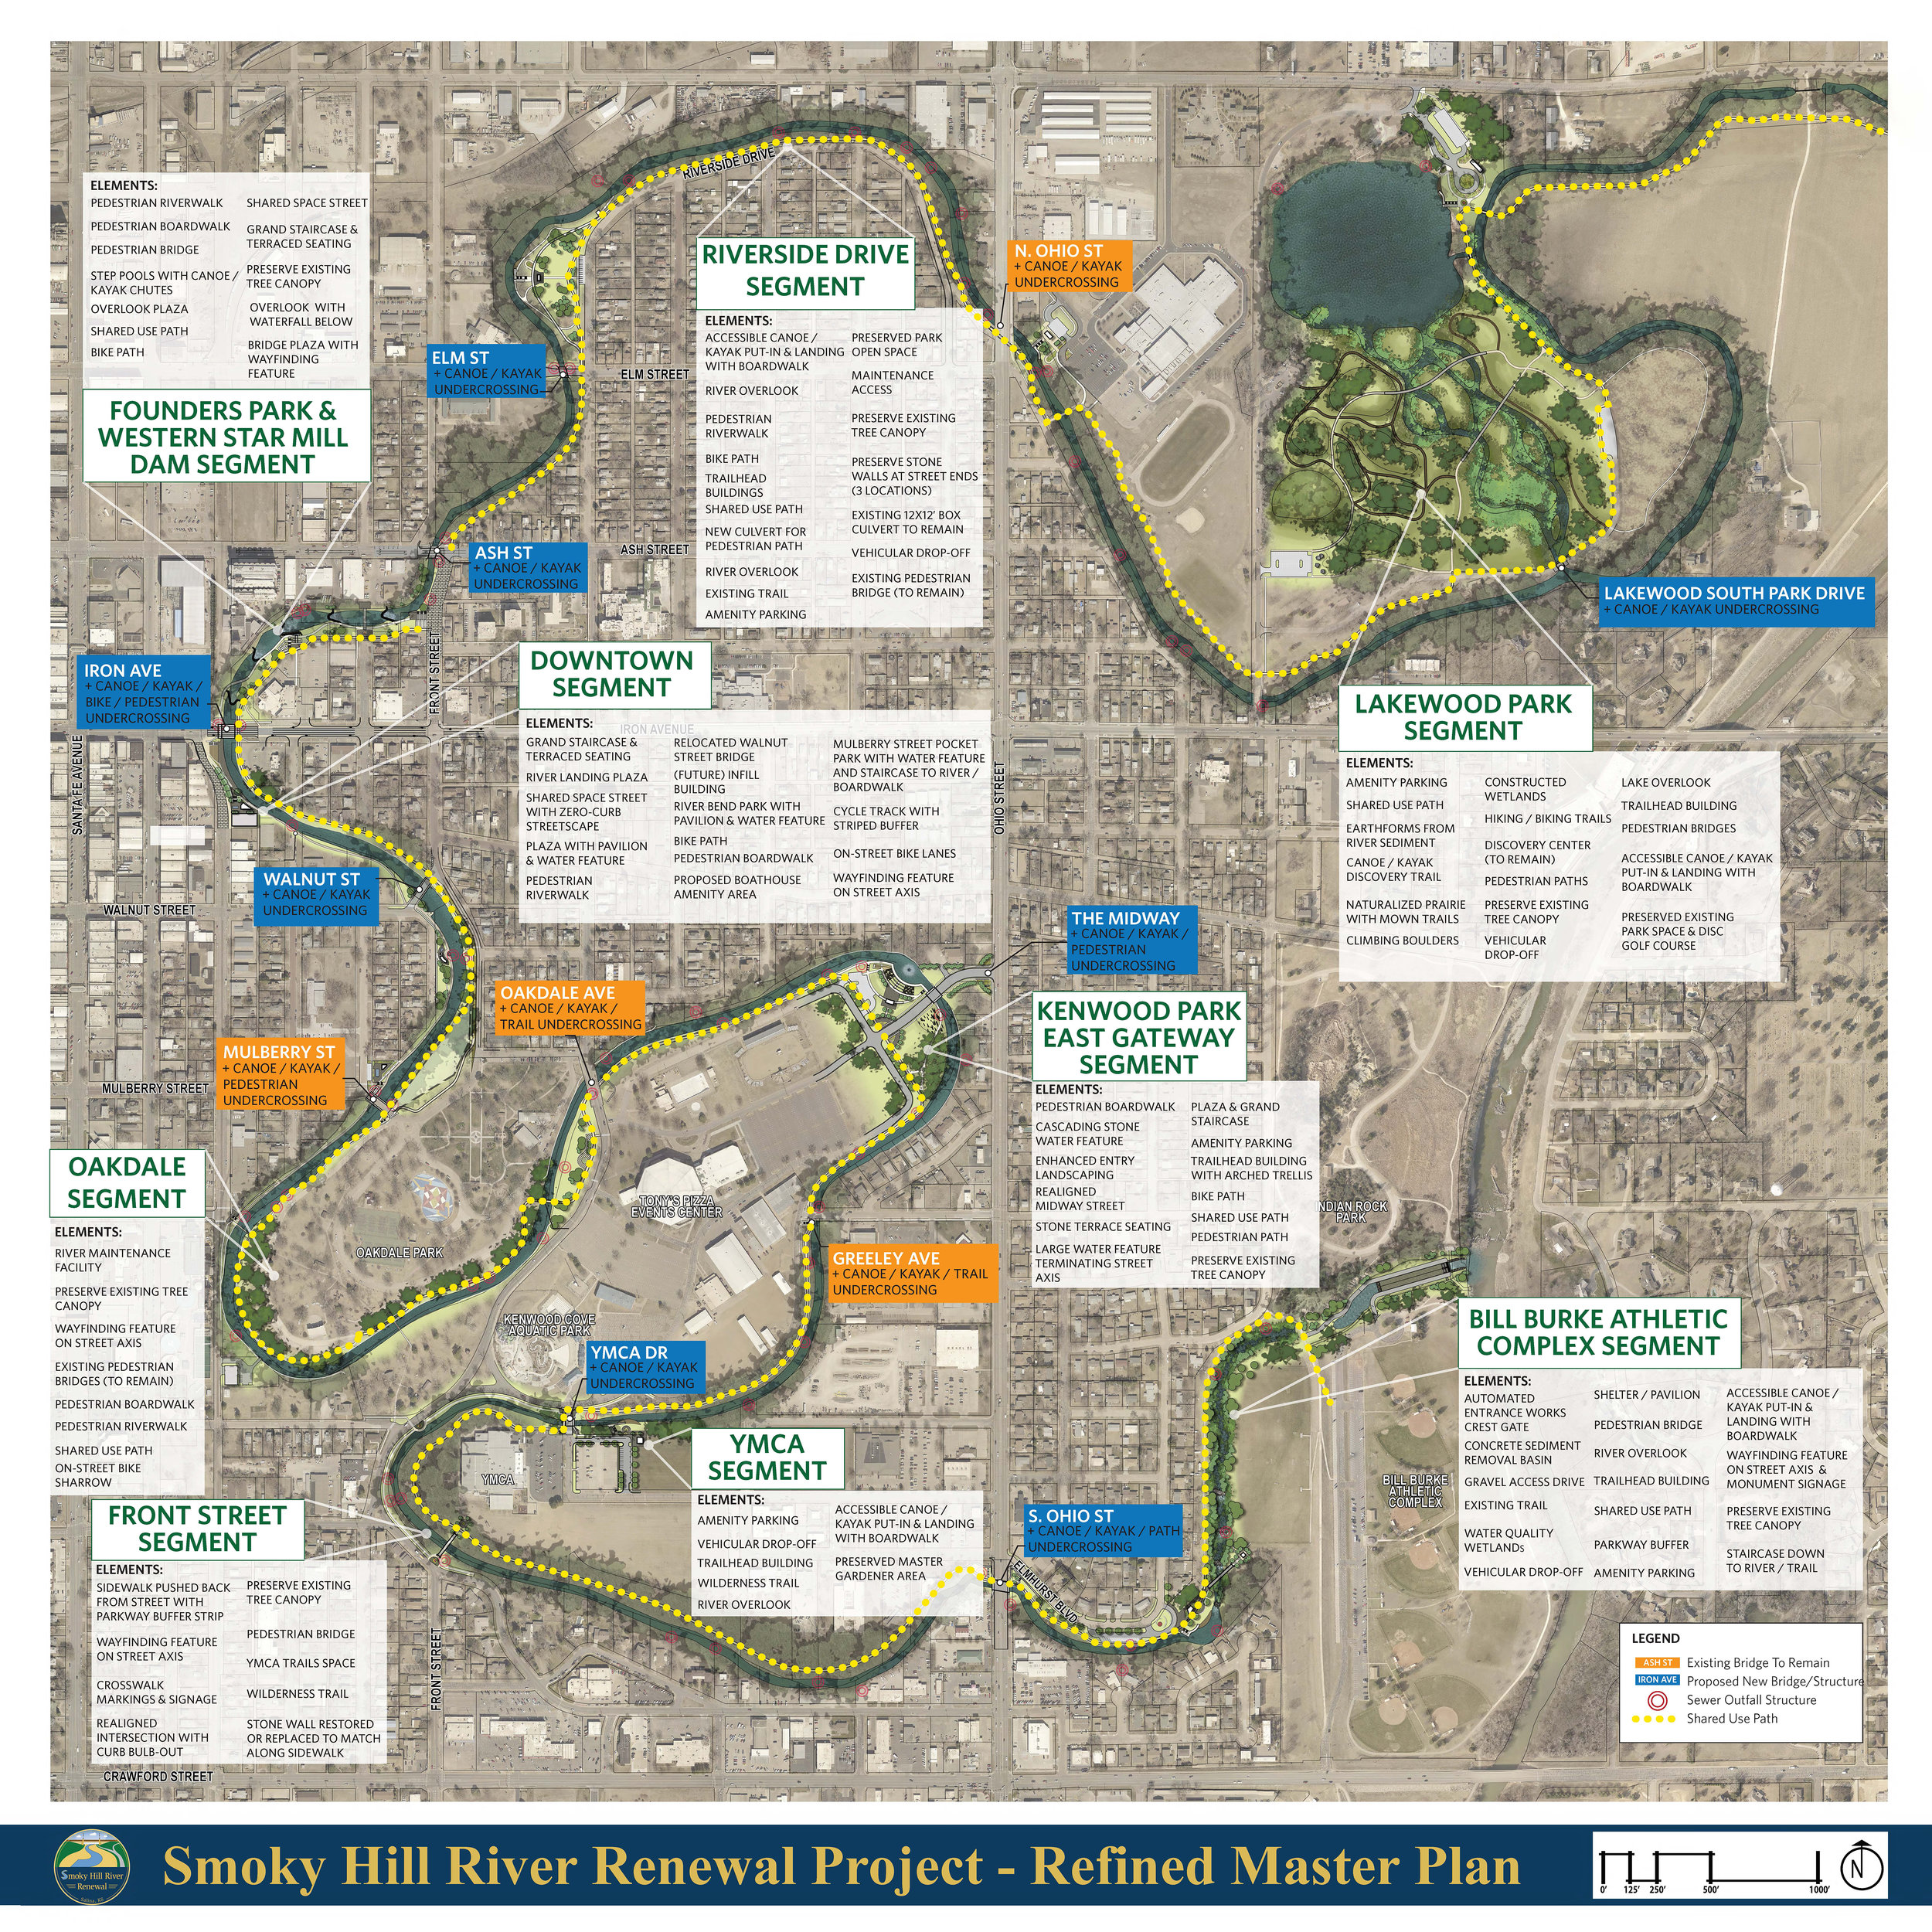 The primary goal of the master plan was to restore the dilapidated 6.8-mile-long urban segment of the Smoky Hill River, isolated since a levee and bypass channel were constructed in the 1960s, through a complete channel and riverbank reconstruction project. Along with the restored river and waterfront, a greenway and trail system will be created to provide residents and visitors alike a continuous, context-appropriate open space amenity. Along the trail, at strategic locations near existing public facilities and historic neighborhoods, design unique trailhead and canoe/kayak put-in facilities to provide easy and open access to the transformative waterway.